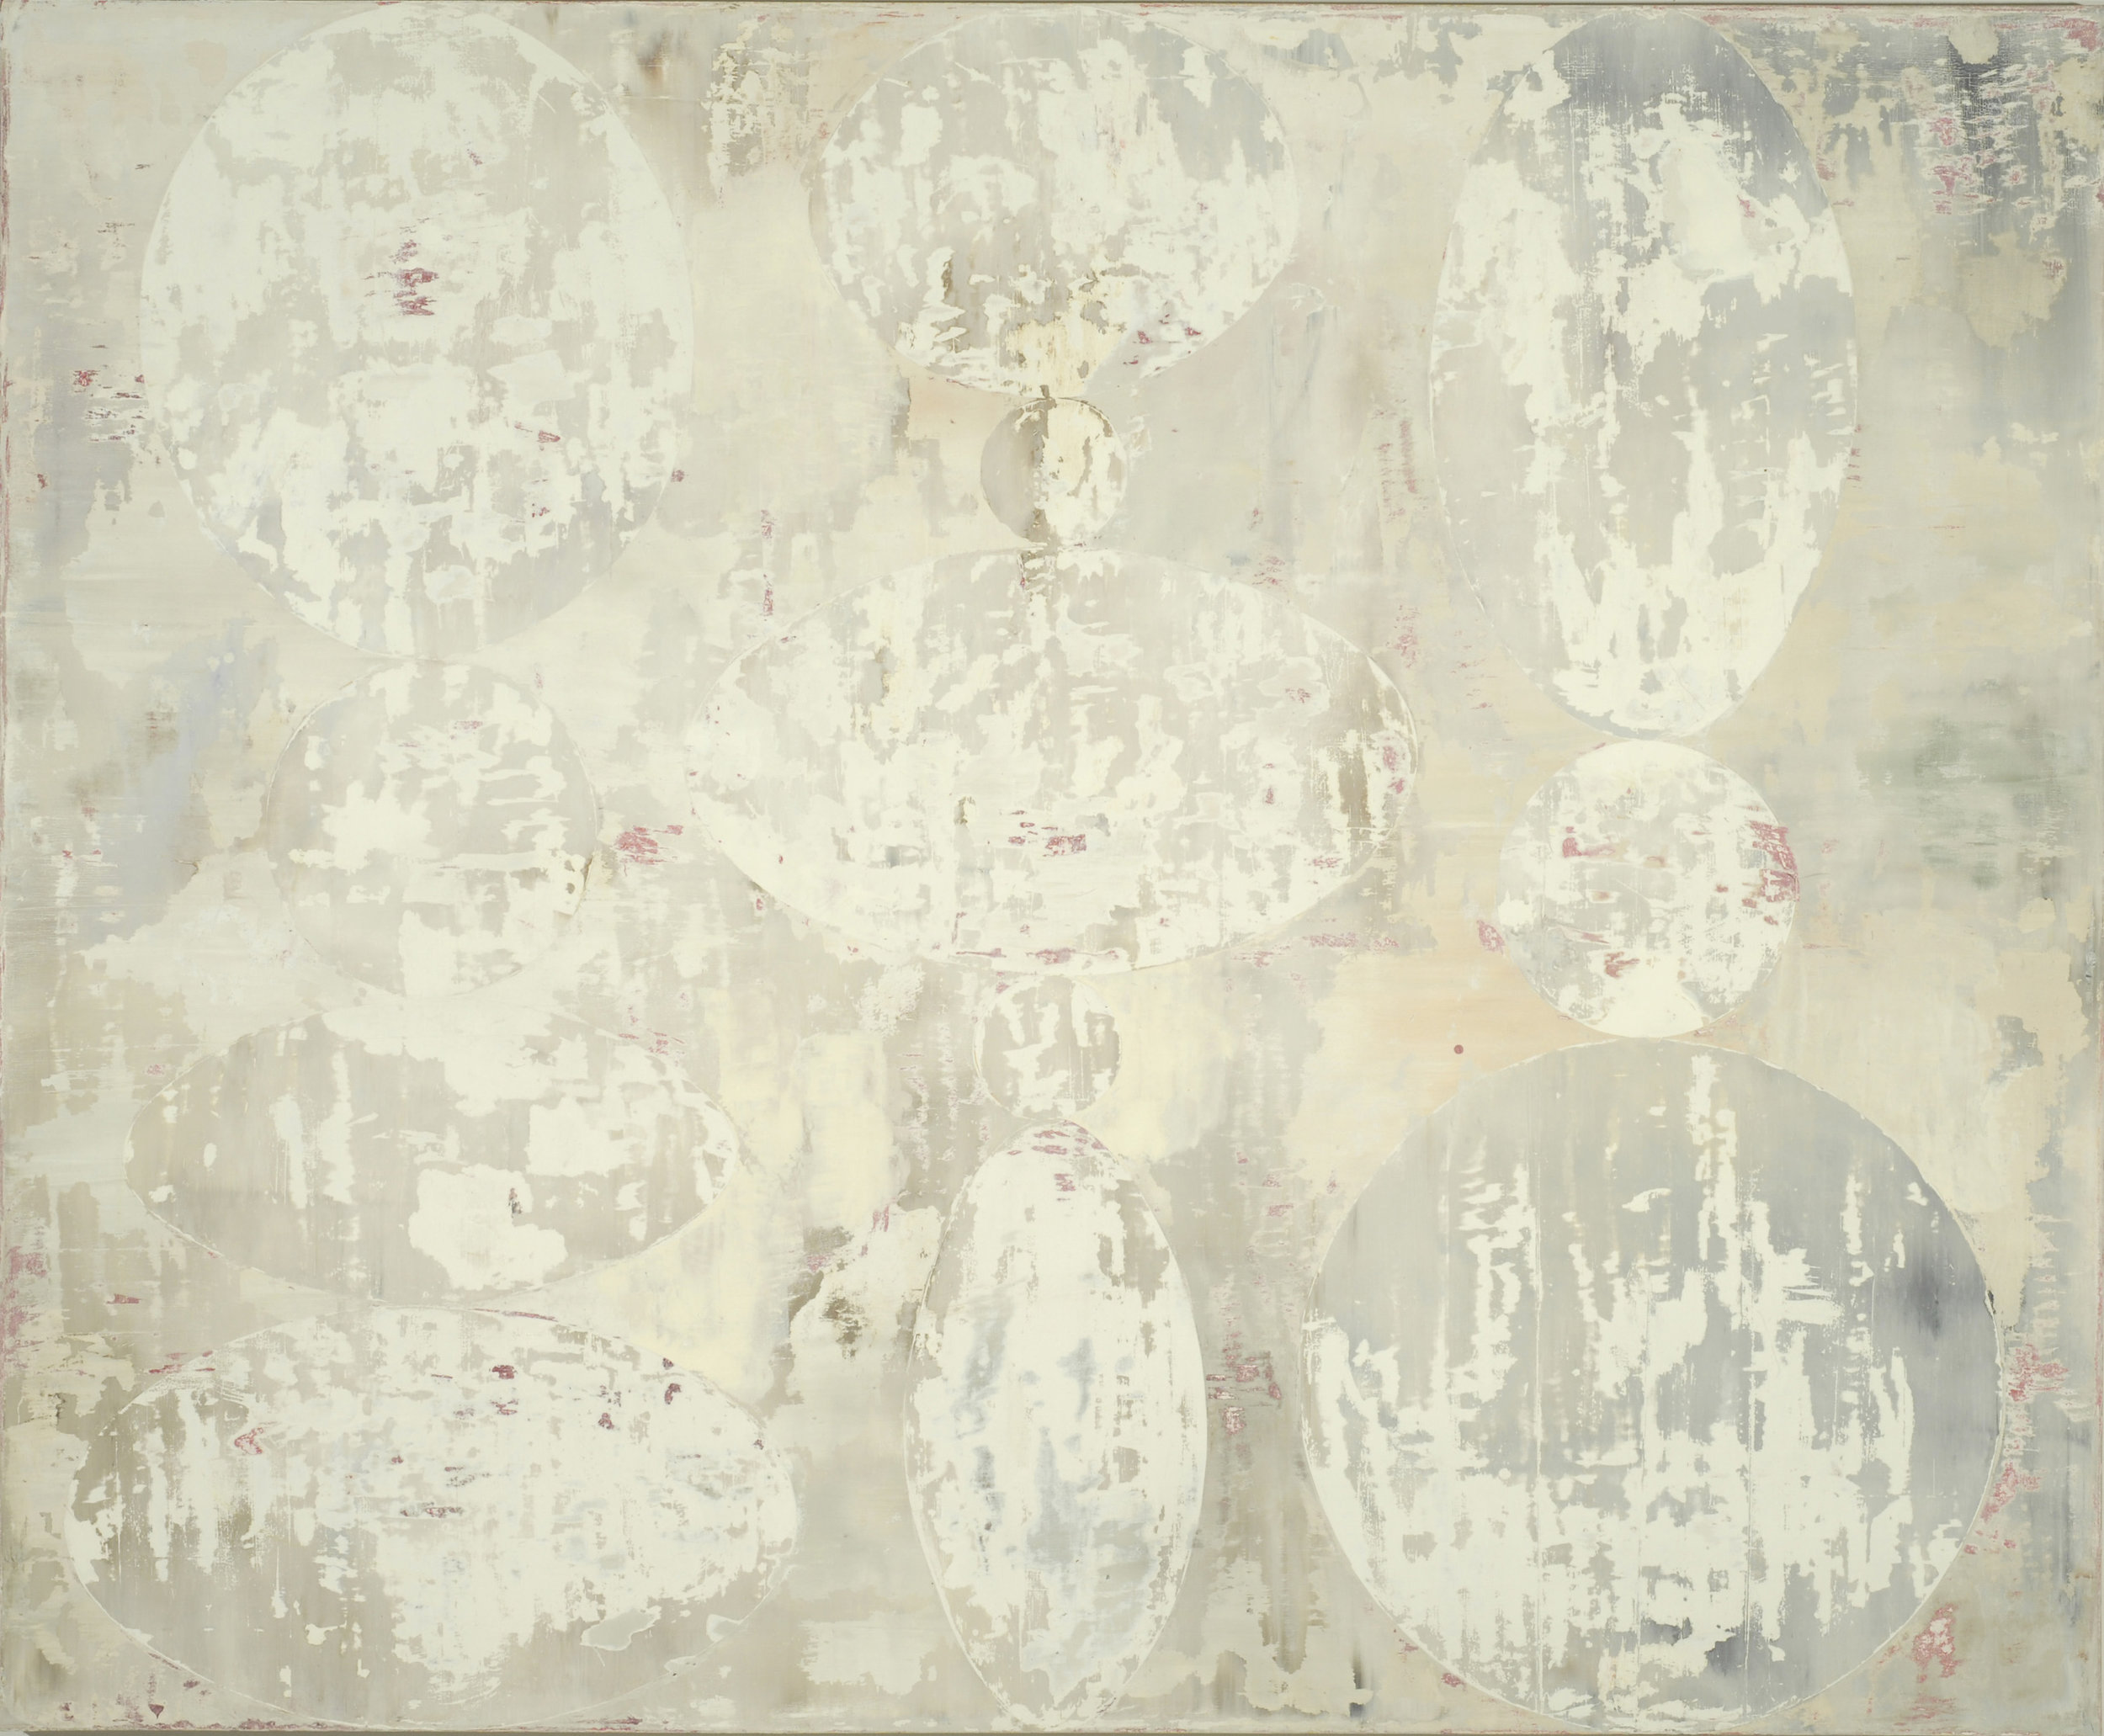 New Moon, 2008, oil on canvas, 59 x 72 in   SOLD